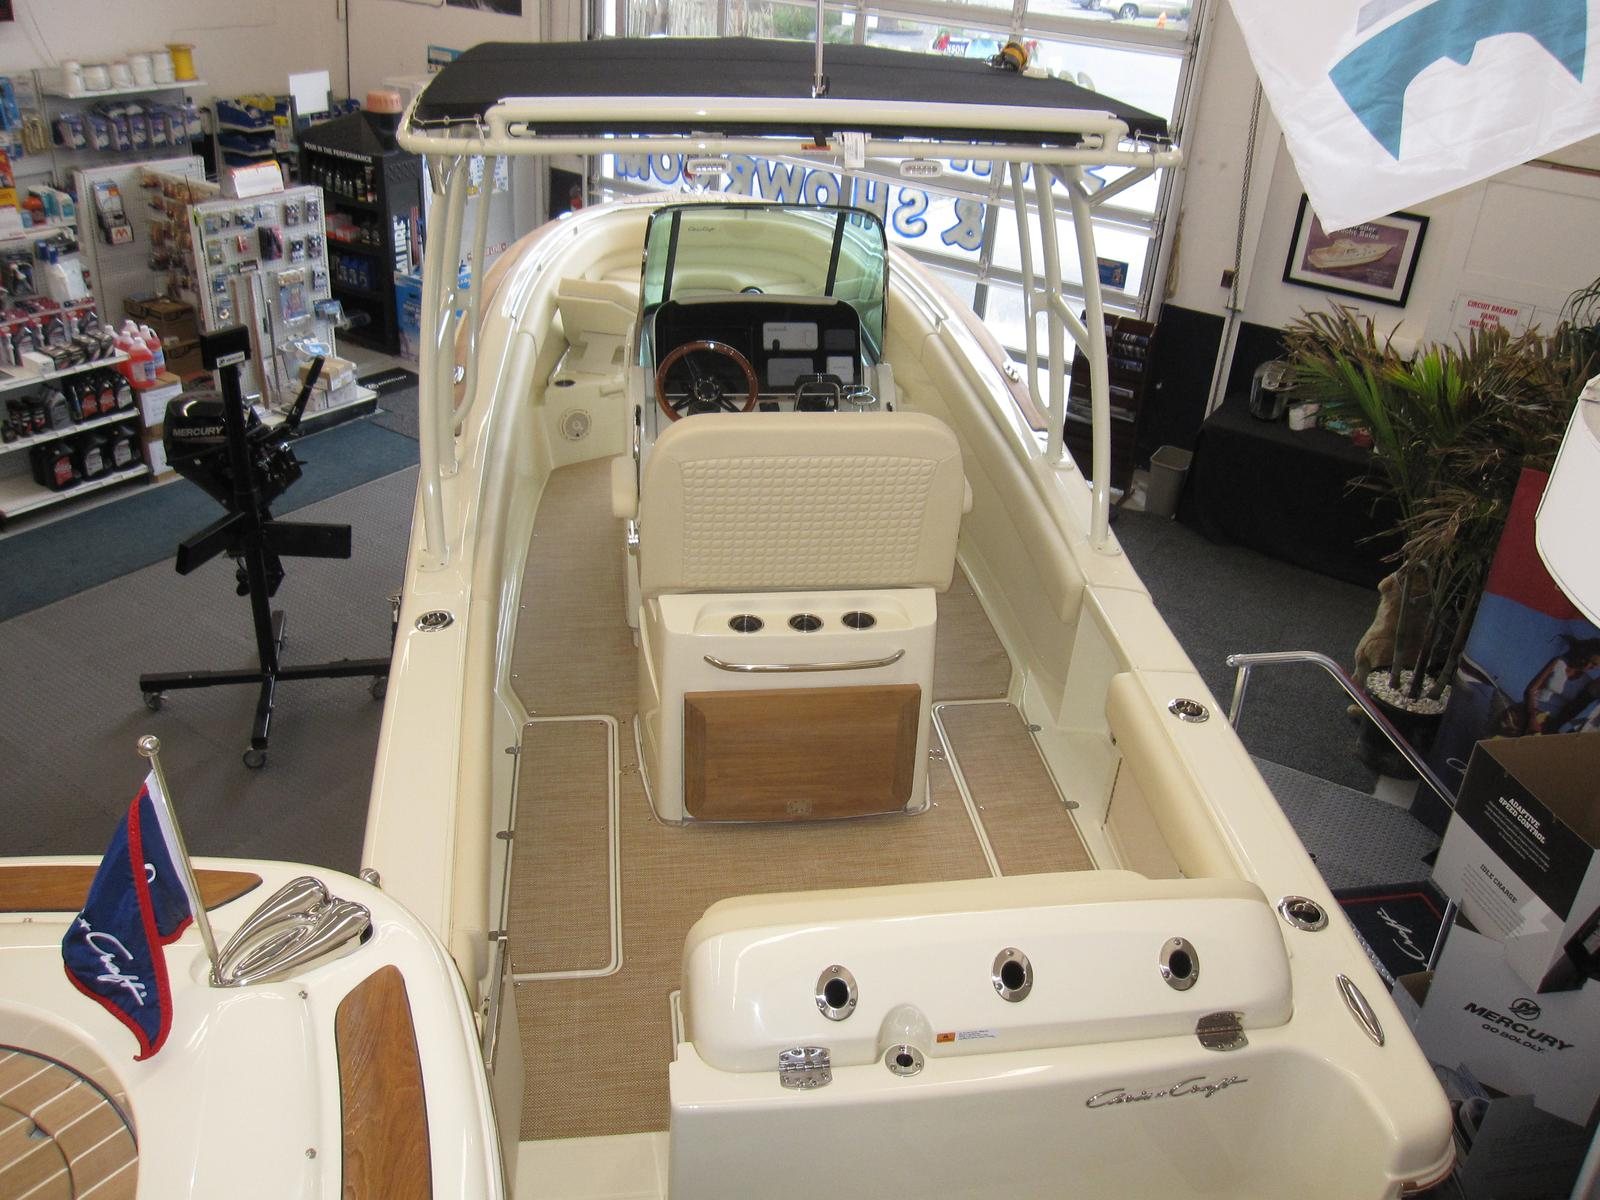 2019 Chris Craft Catalina 27 for sale in Point Pleasant, NJ